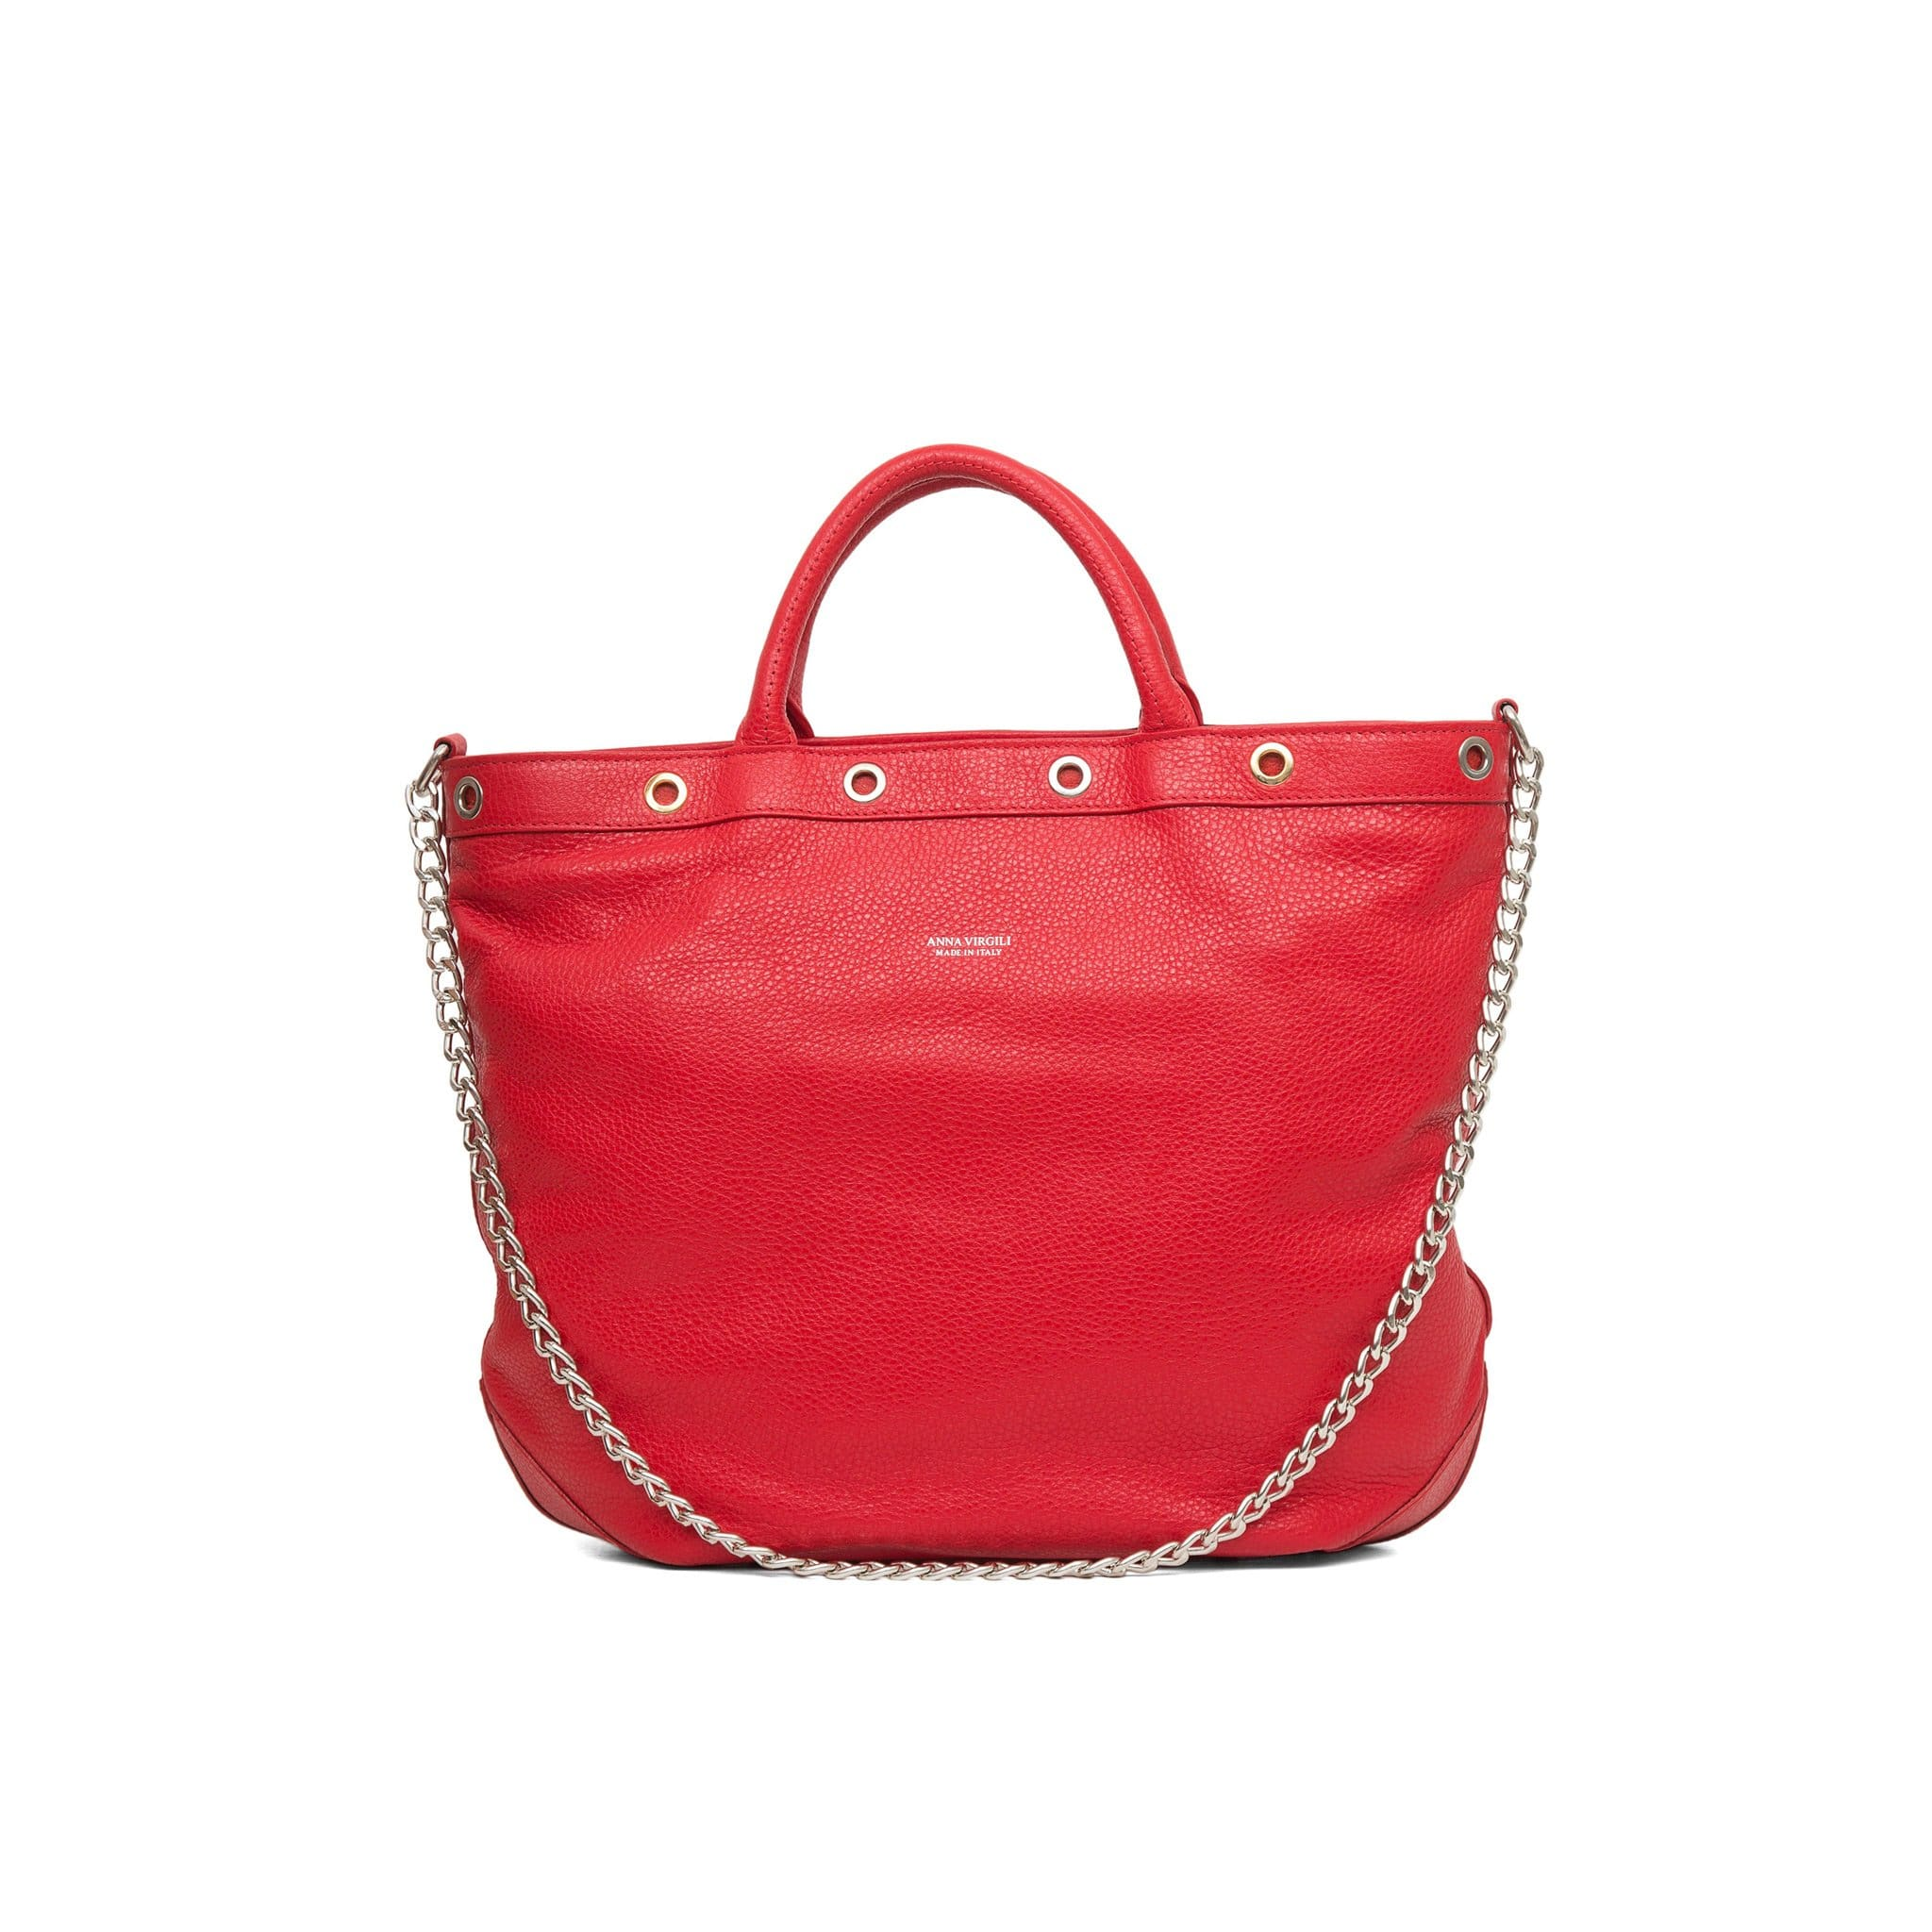 Naide Rock Leather Handbag - Red